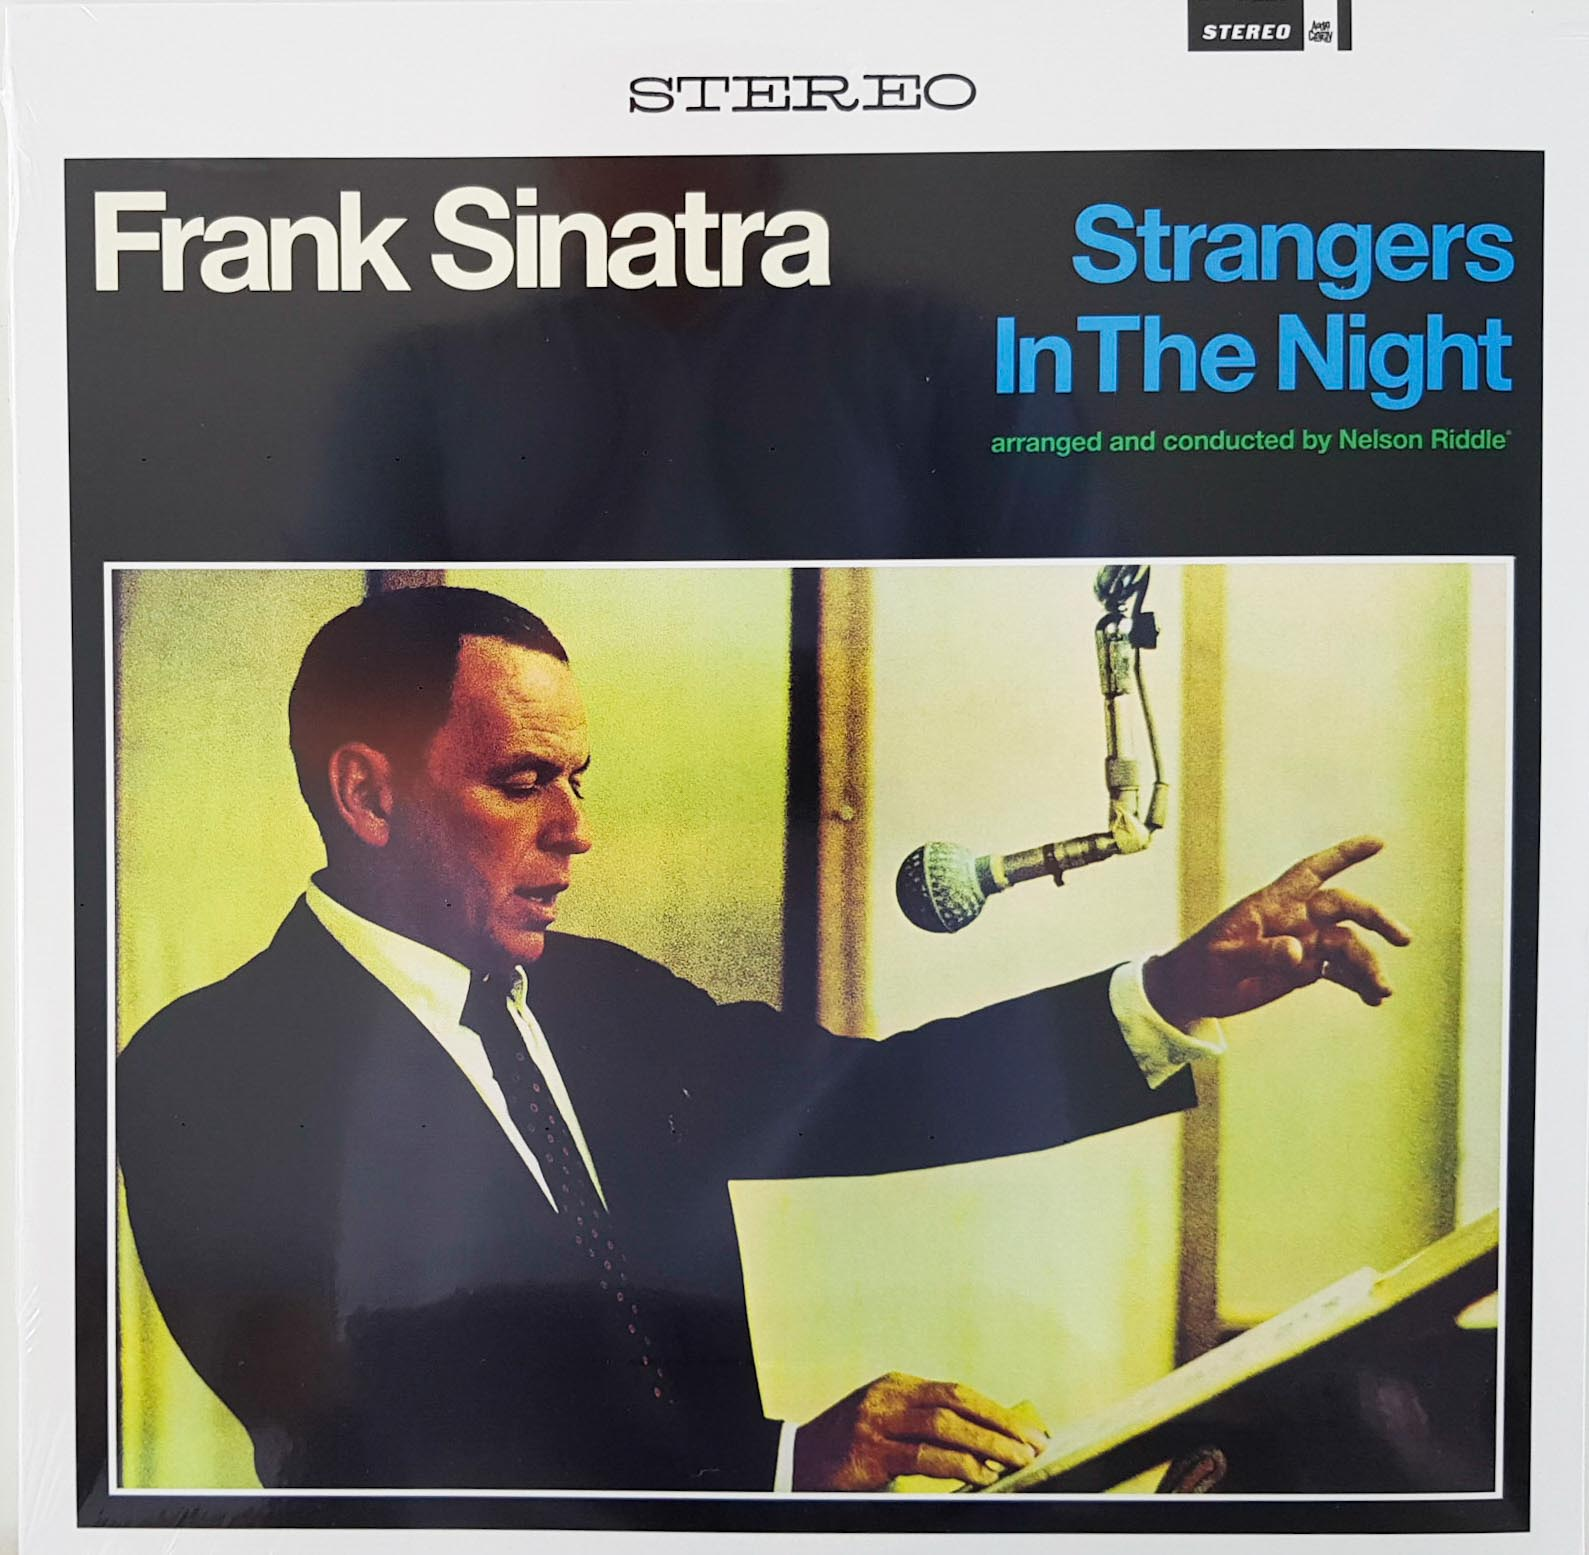 Lp Vinil Frank Sinatra Strangers In The Night